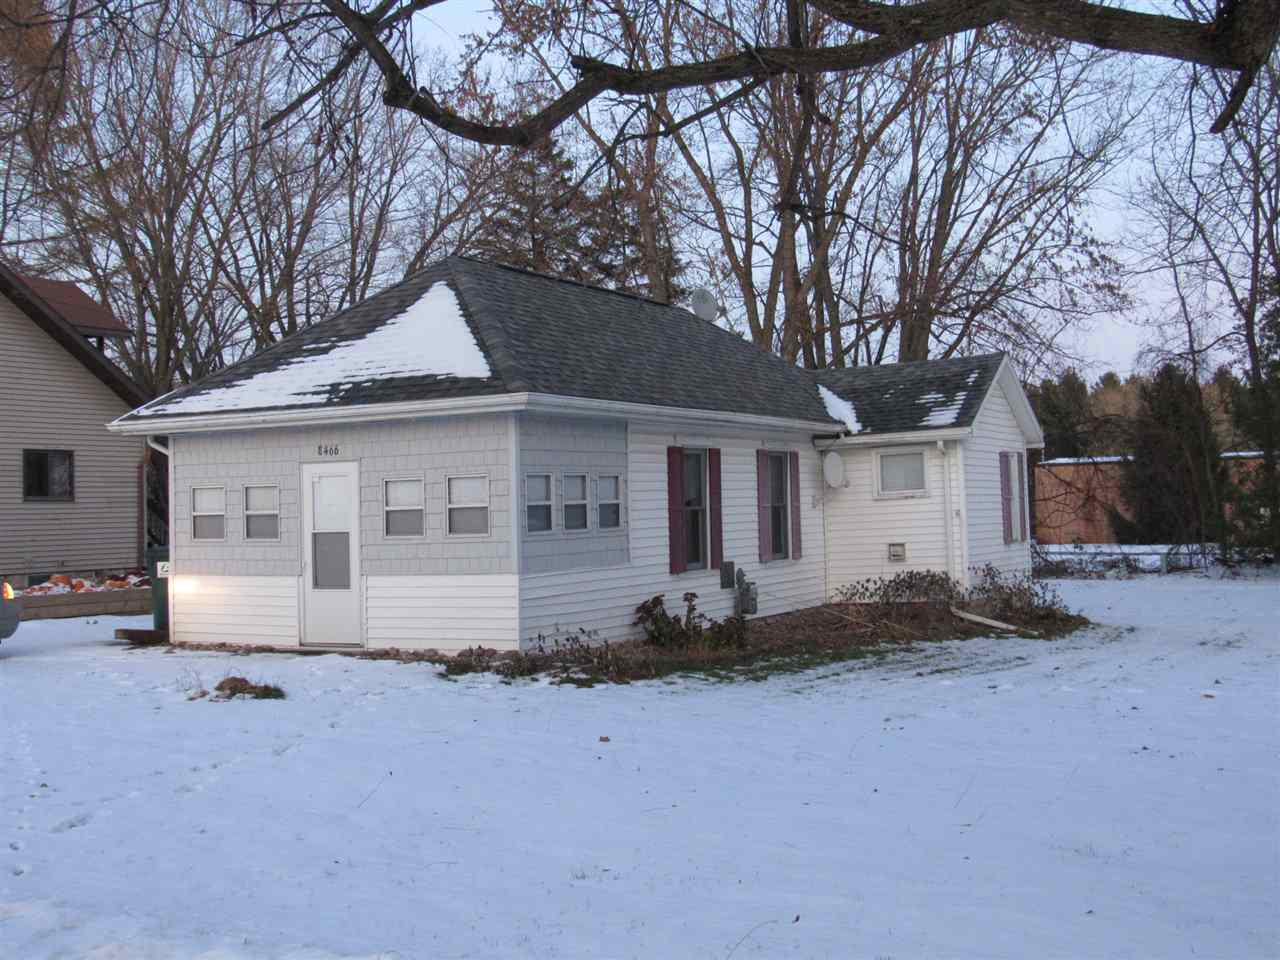 Don't pay RENT! Own your own property for less! 1 Bedroom 1 bath ready for its new owner. Newer Back Deck to enjoy the yard.